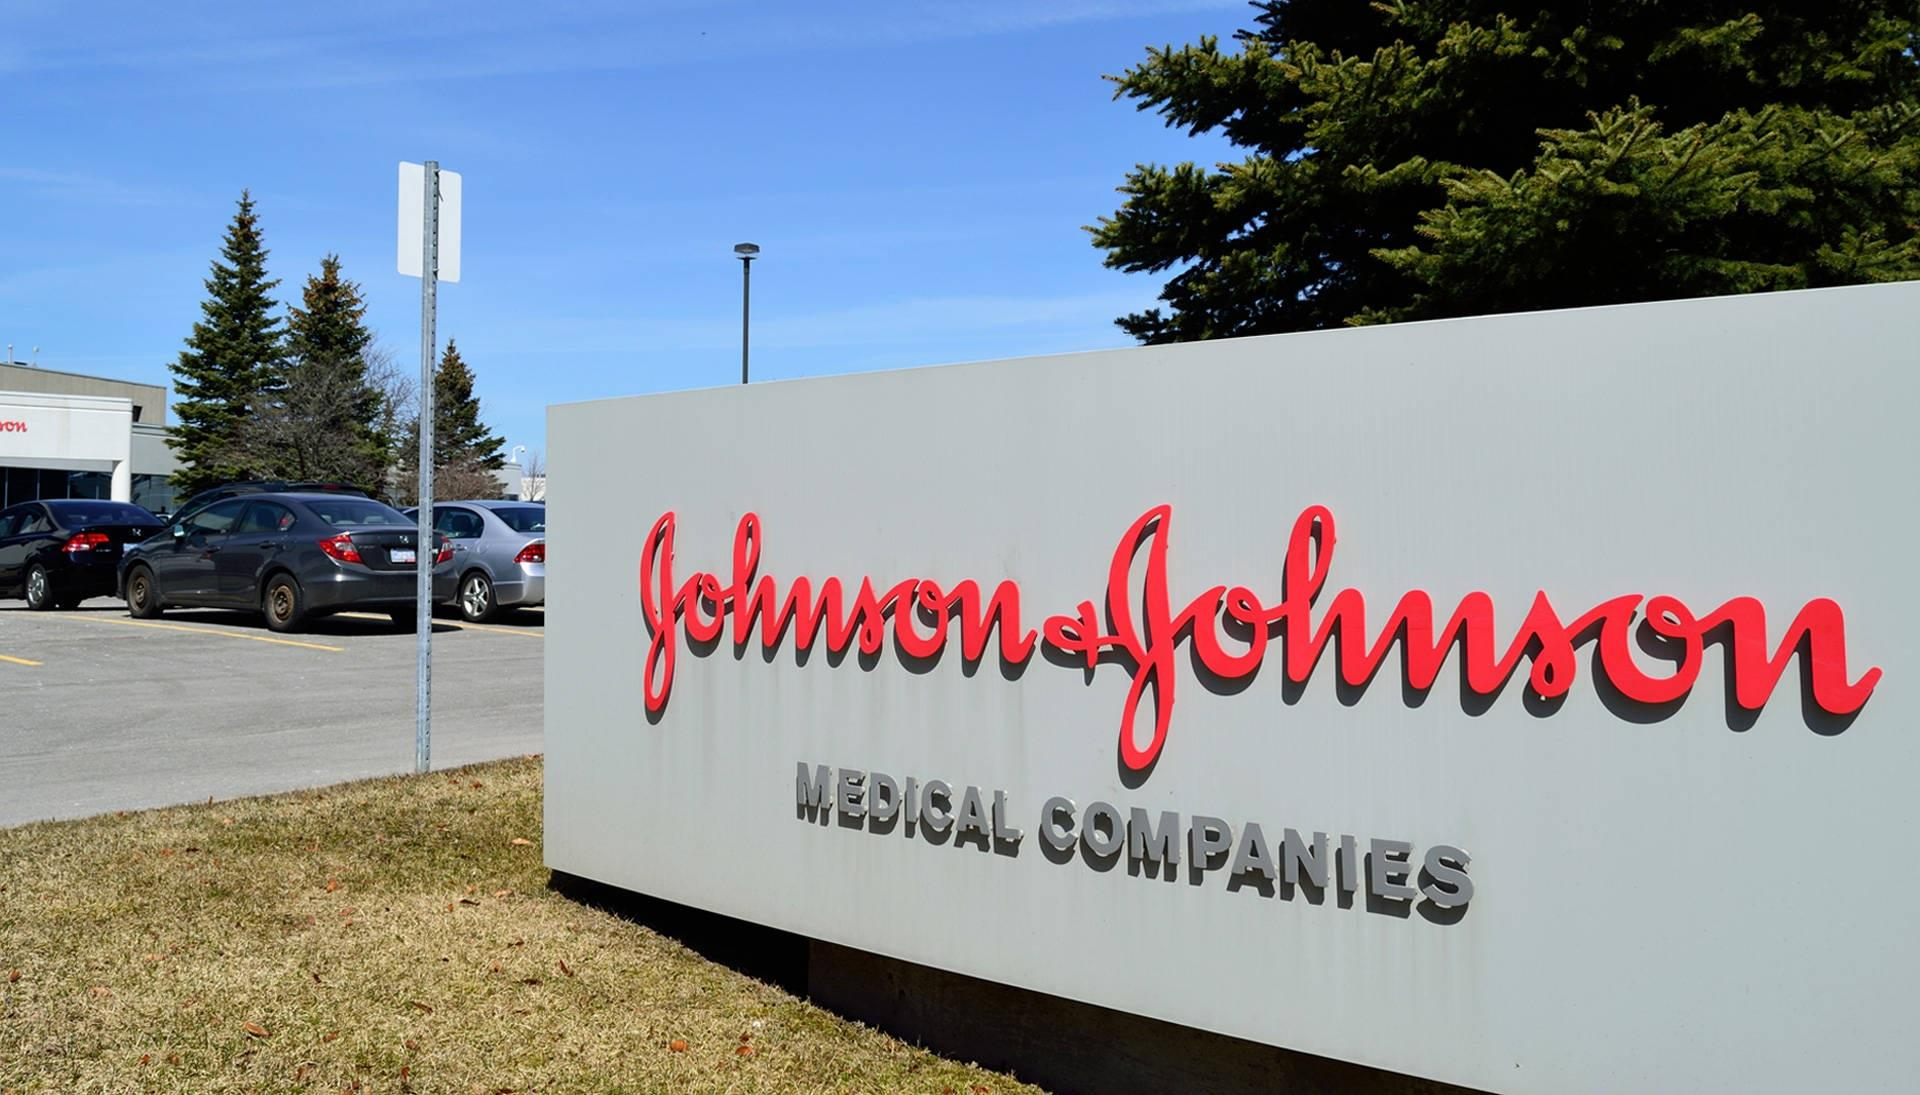 Johnson & Johnson (JNJ) Shares Bought by Dempze Nancy E